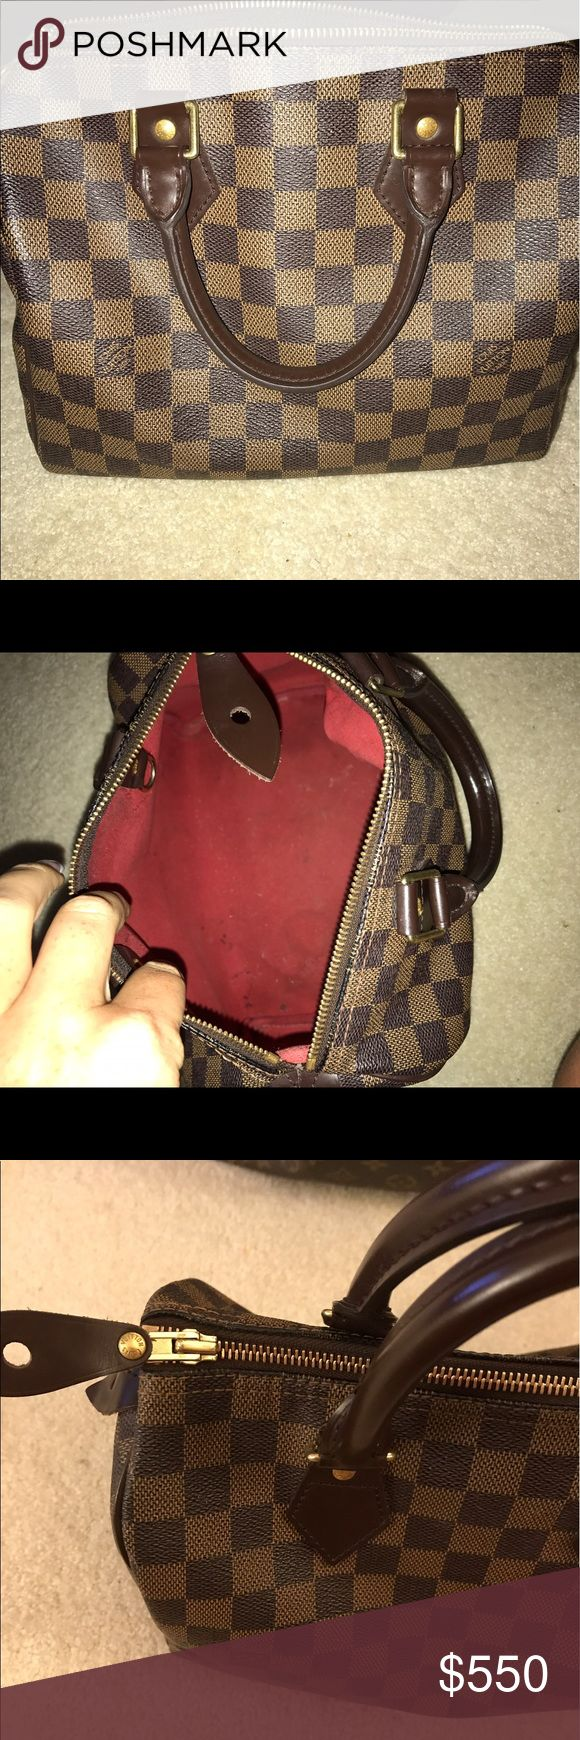 Speedy 25 Damier Authentic speedy 25, in fair condition. No tears or rubbing. Some pen marks/ make up in interior.. nothing major. Pictures of date code included SP0096. Original lock included also. All hardware and leather in good condition, well taken care of. Louis Vuitton Bags Totes